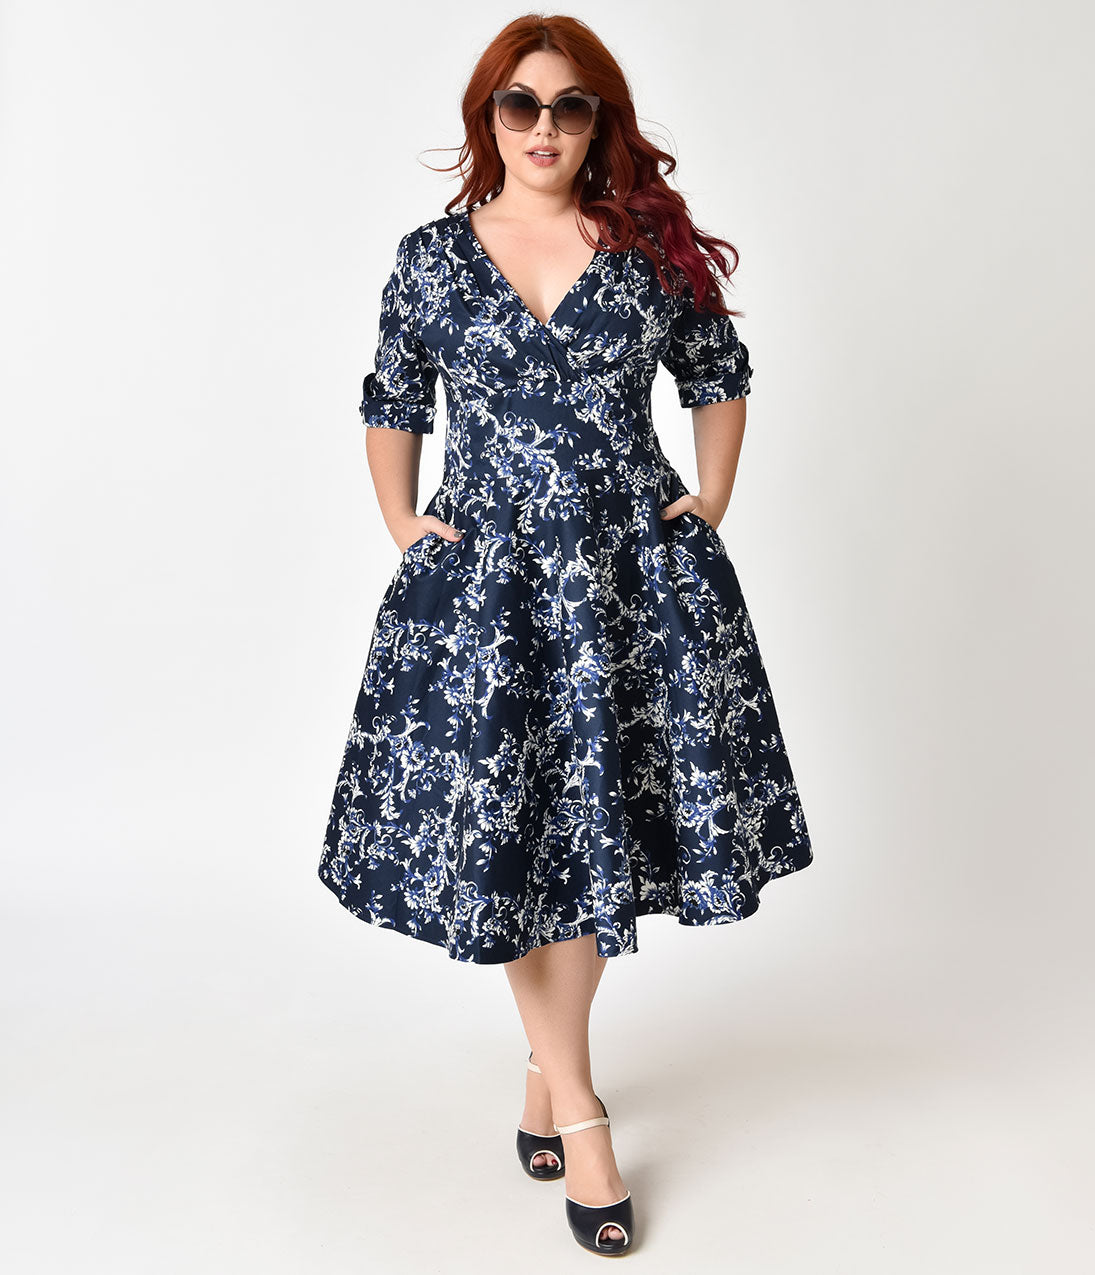 60s Plus Size Retro Dresses, Clothing, Costumes | 70s Dresses